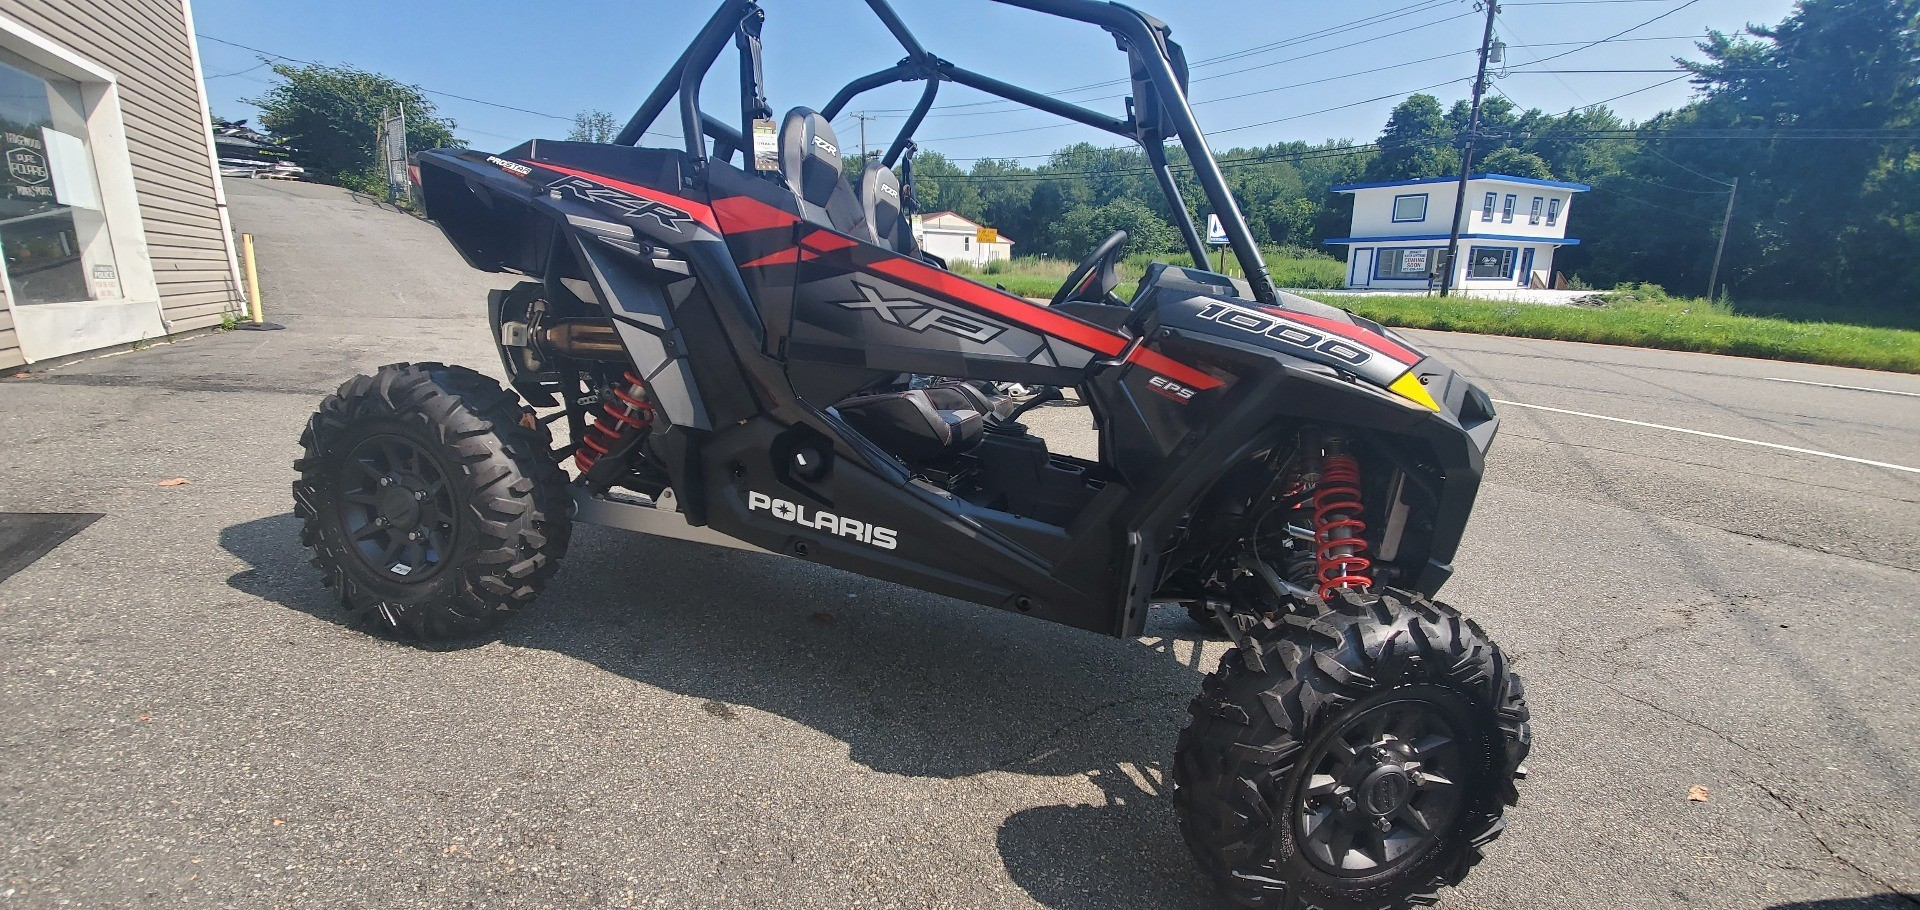 2019 Polaris RZR XP 1000 in Ledgewood, New Jersey - Photo 1